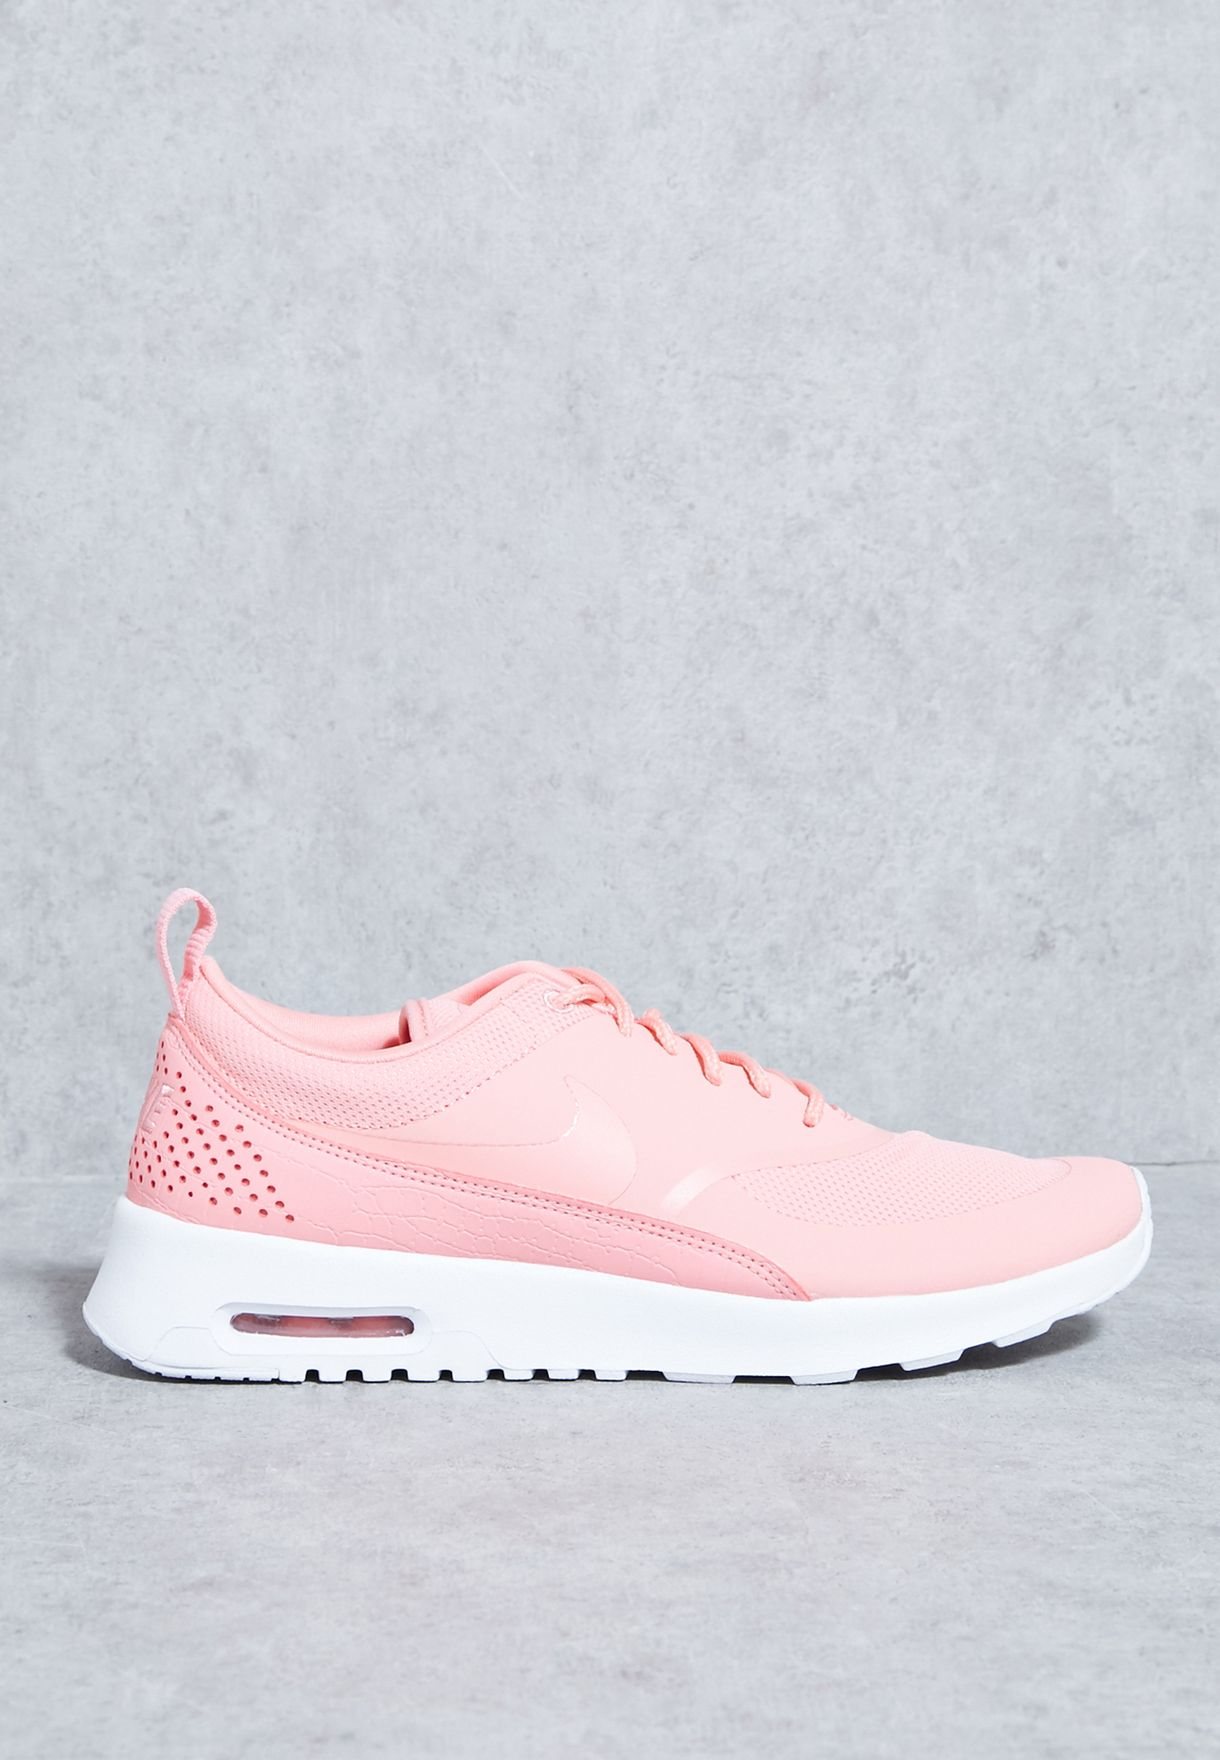 on sale 665b1 7b40f Shop Nike pink Air Max Thea 599409-803 for Women in UAE - NI